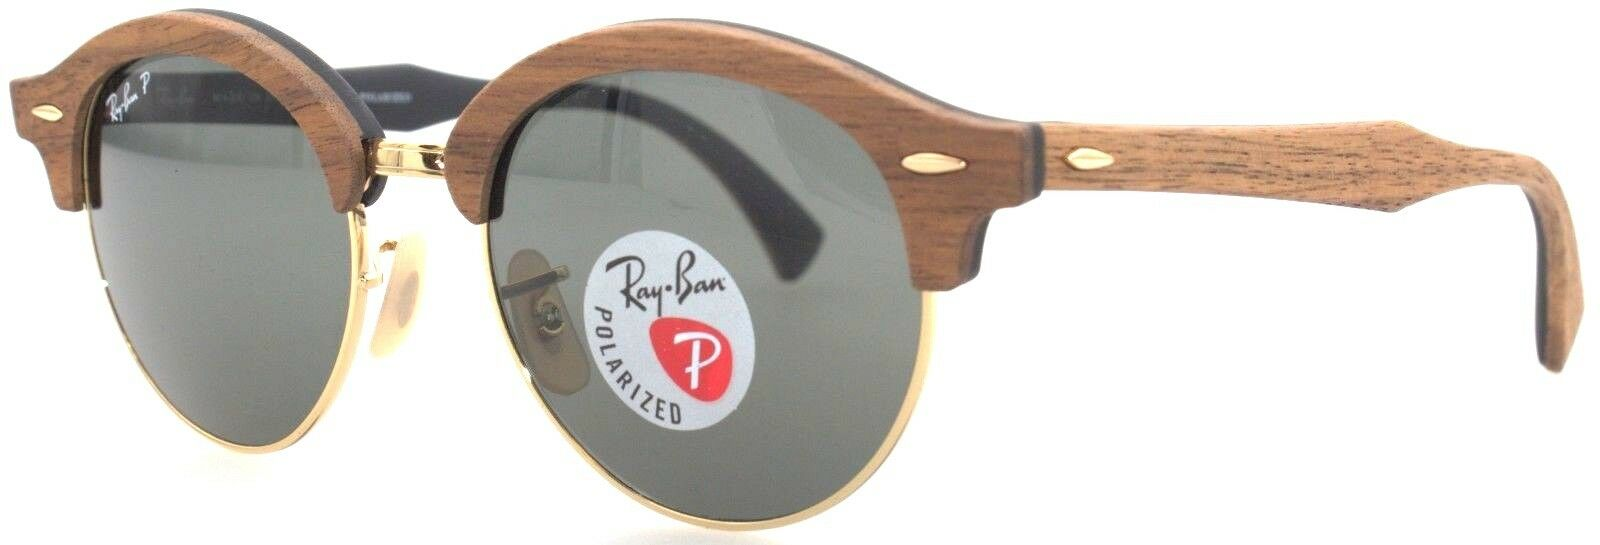 Ray-Ban Sonnenbrille RB4246-M 1181/58 Gr 51 Insolvenzware BS C6 H